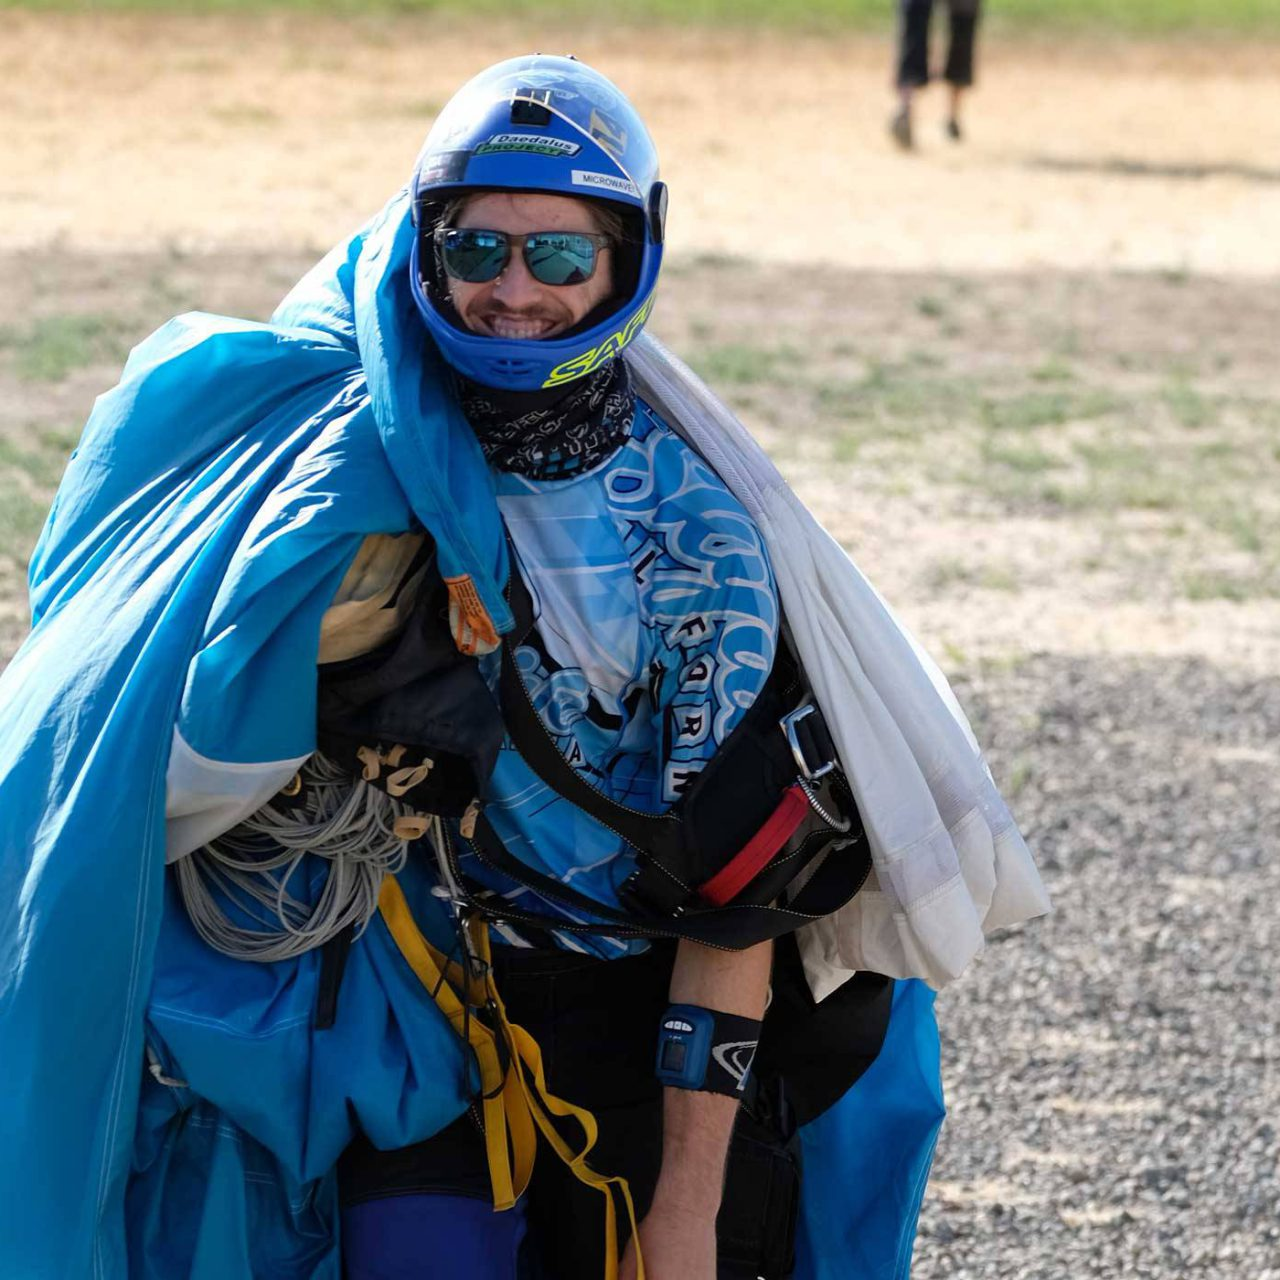 Skydiver walking with canopy in hand after jumping